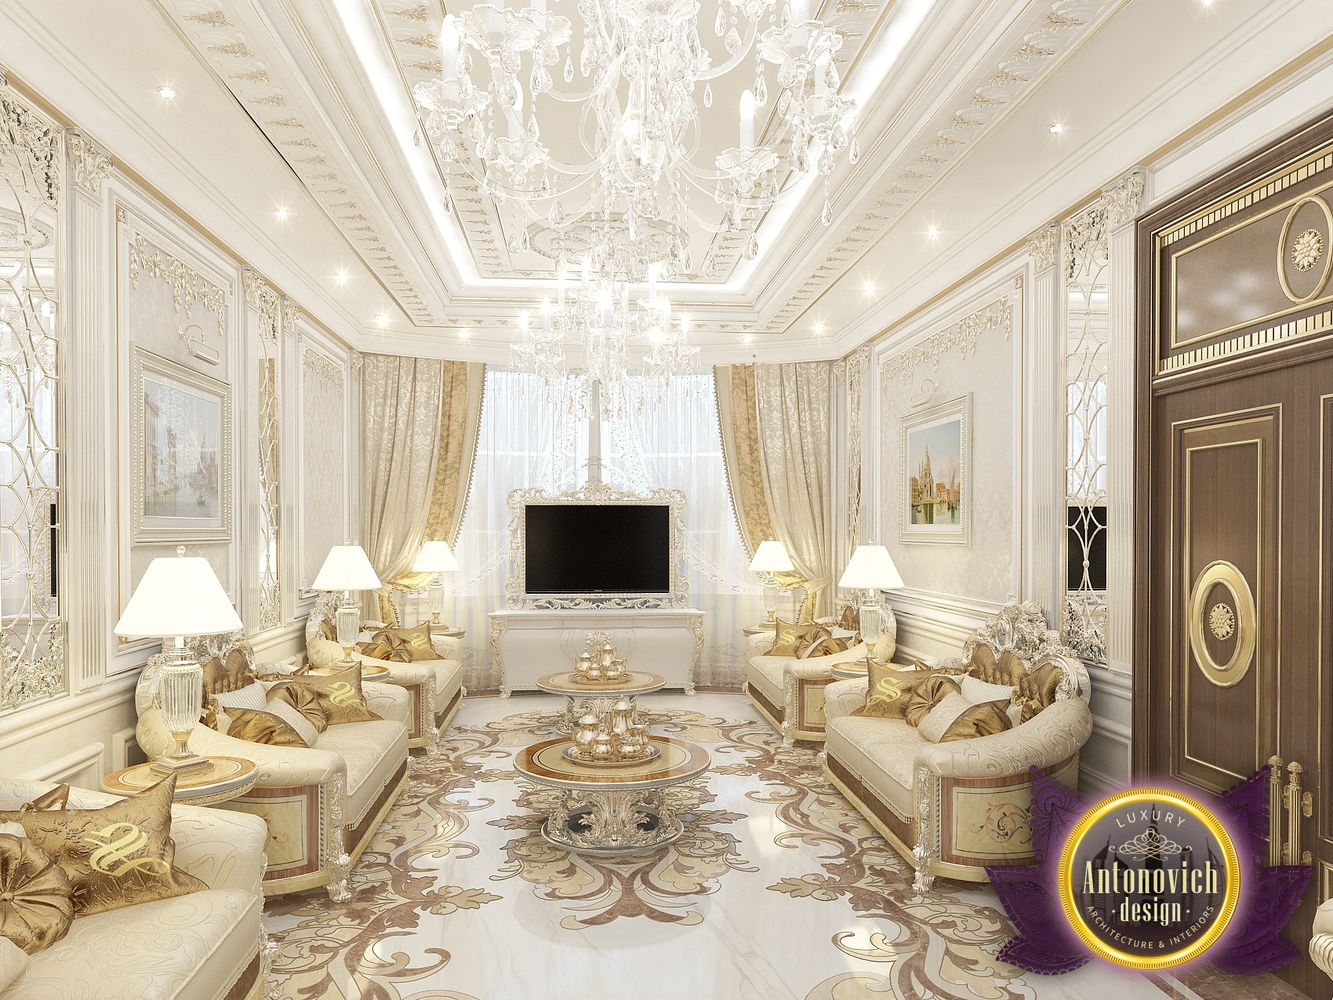 Luxury antonovich design uae living room interior design for Klaus k living room